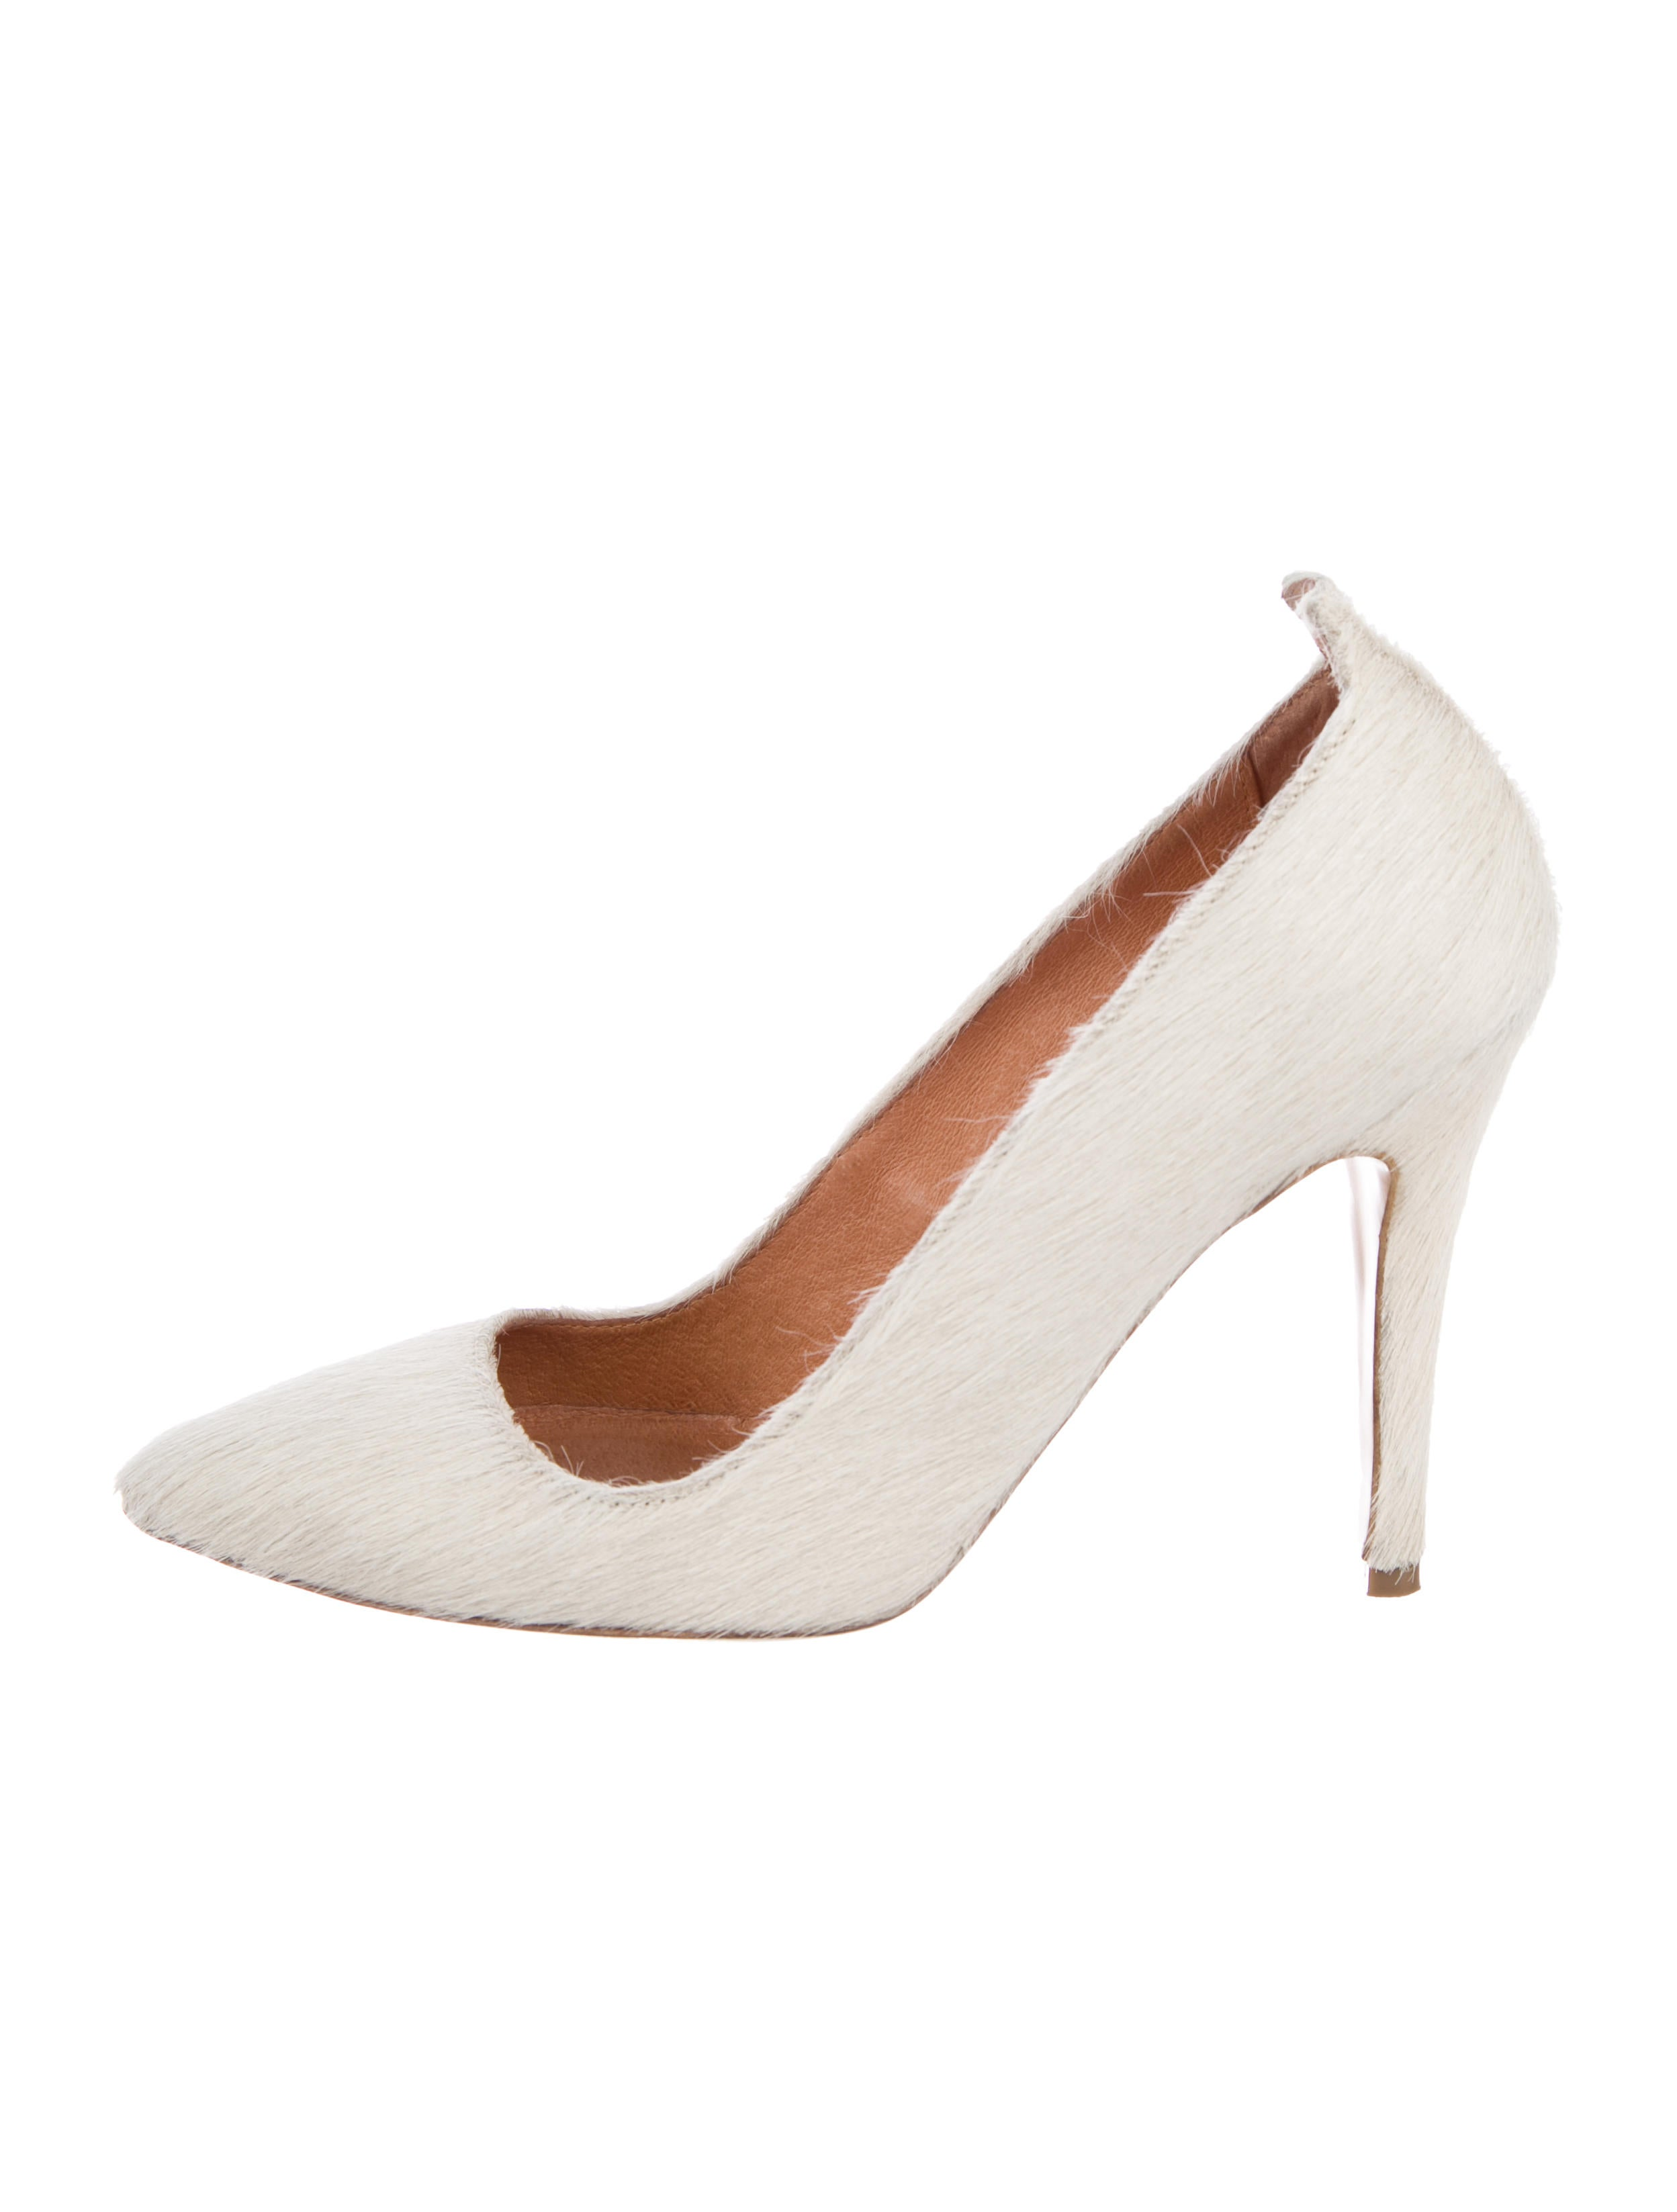 new cheap online Les Prairies de Paris Ponyhair Pointed-Toe Pumps buy cheap sneakernews low price fee shipping cheap online clearance outlet buy cheap best seller yzxGqie